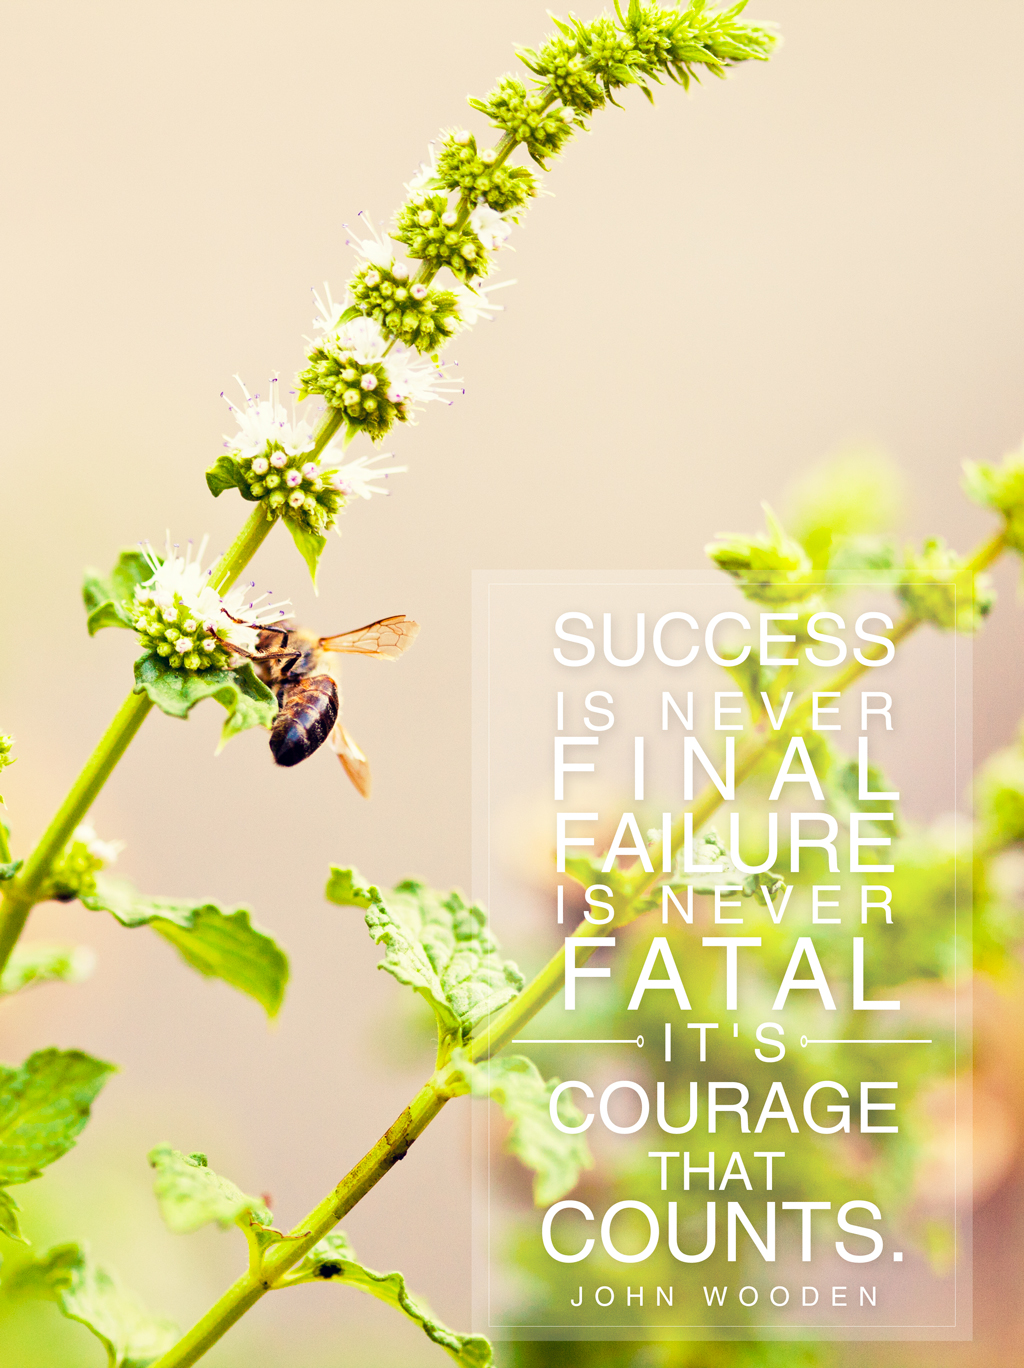 seeds // it's courage that counts